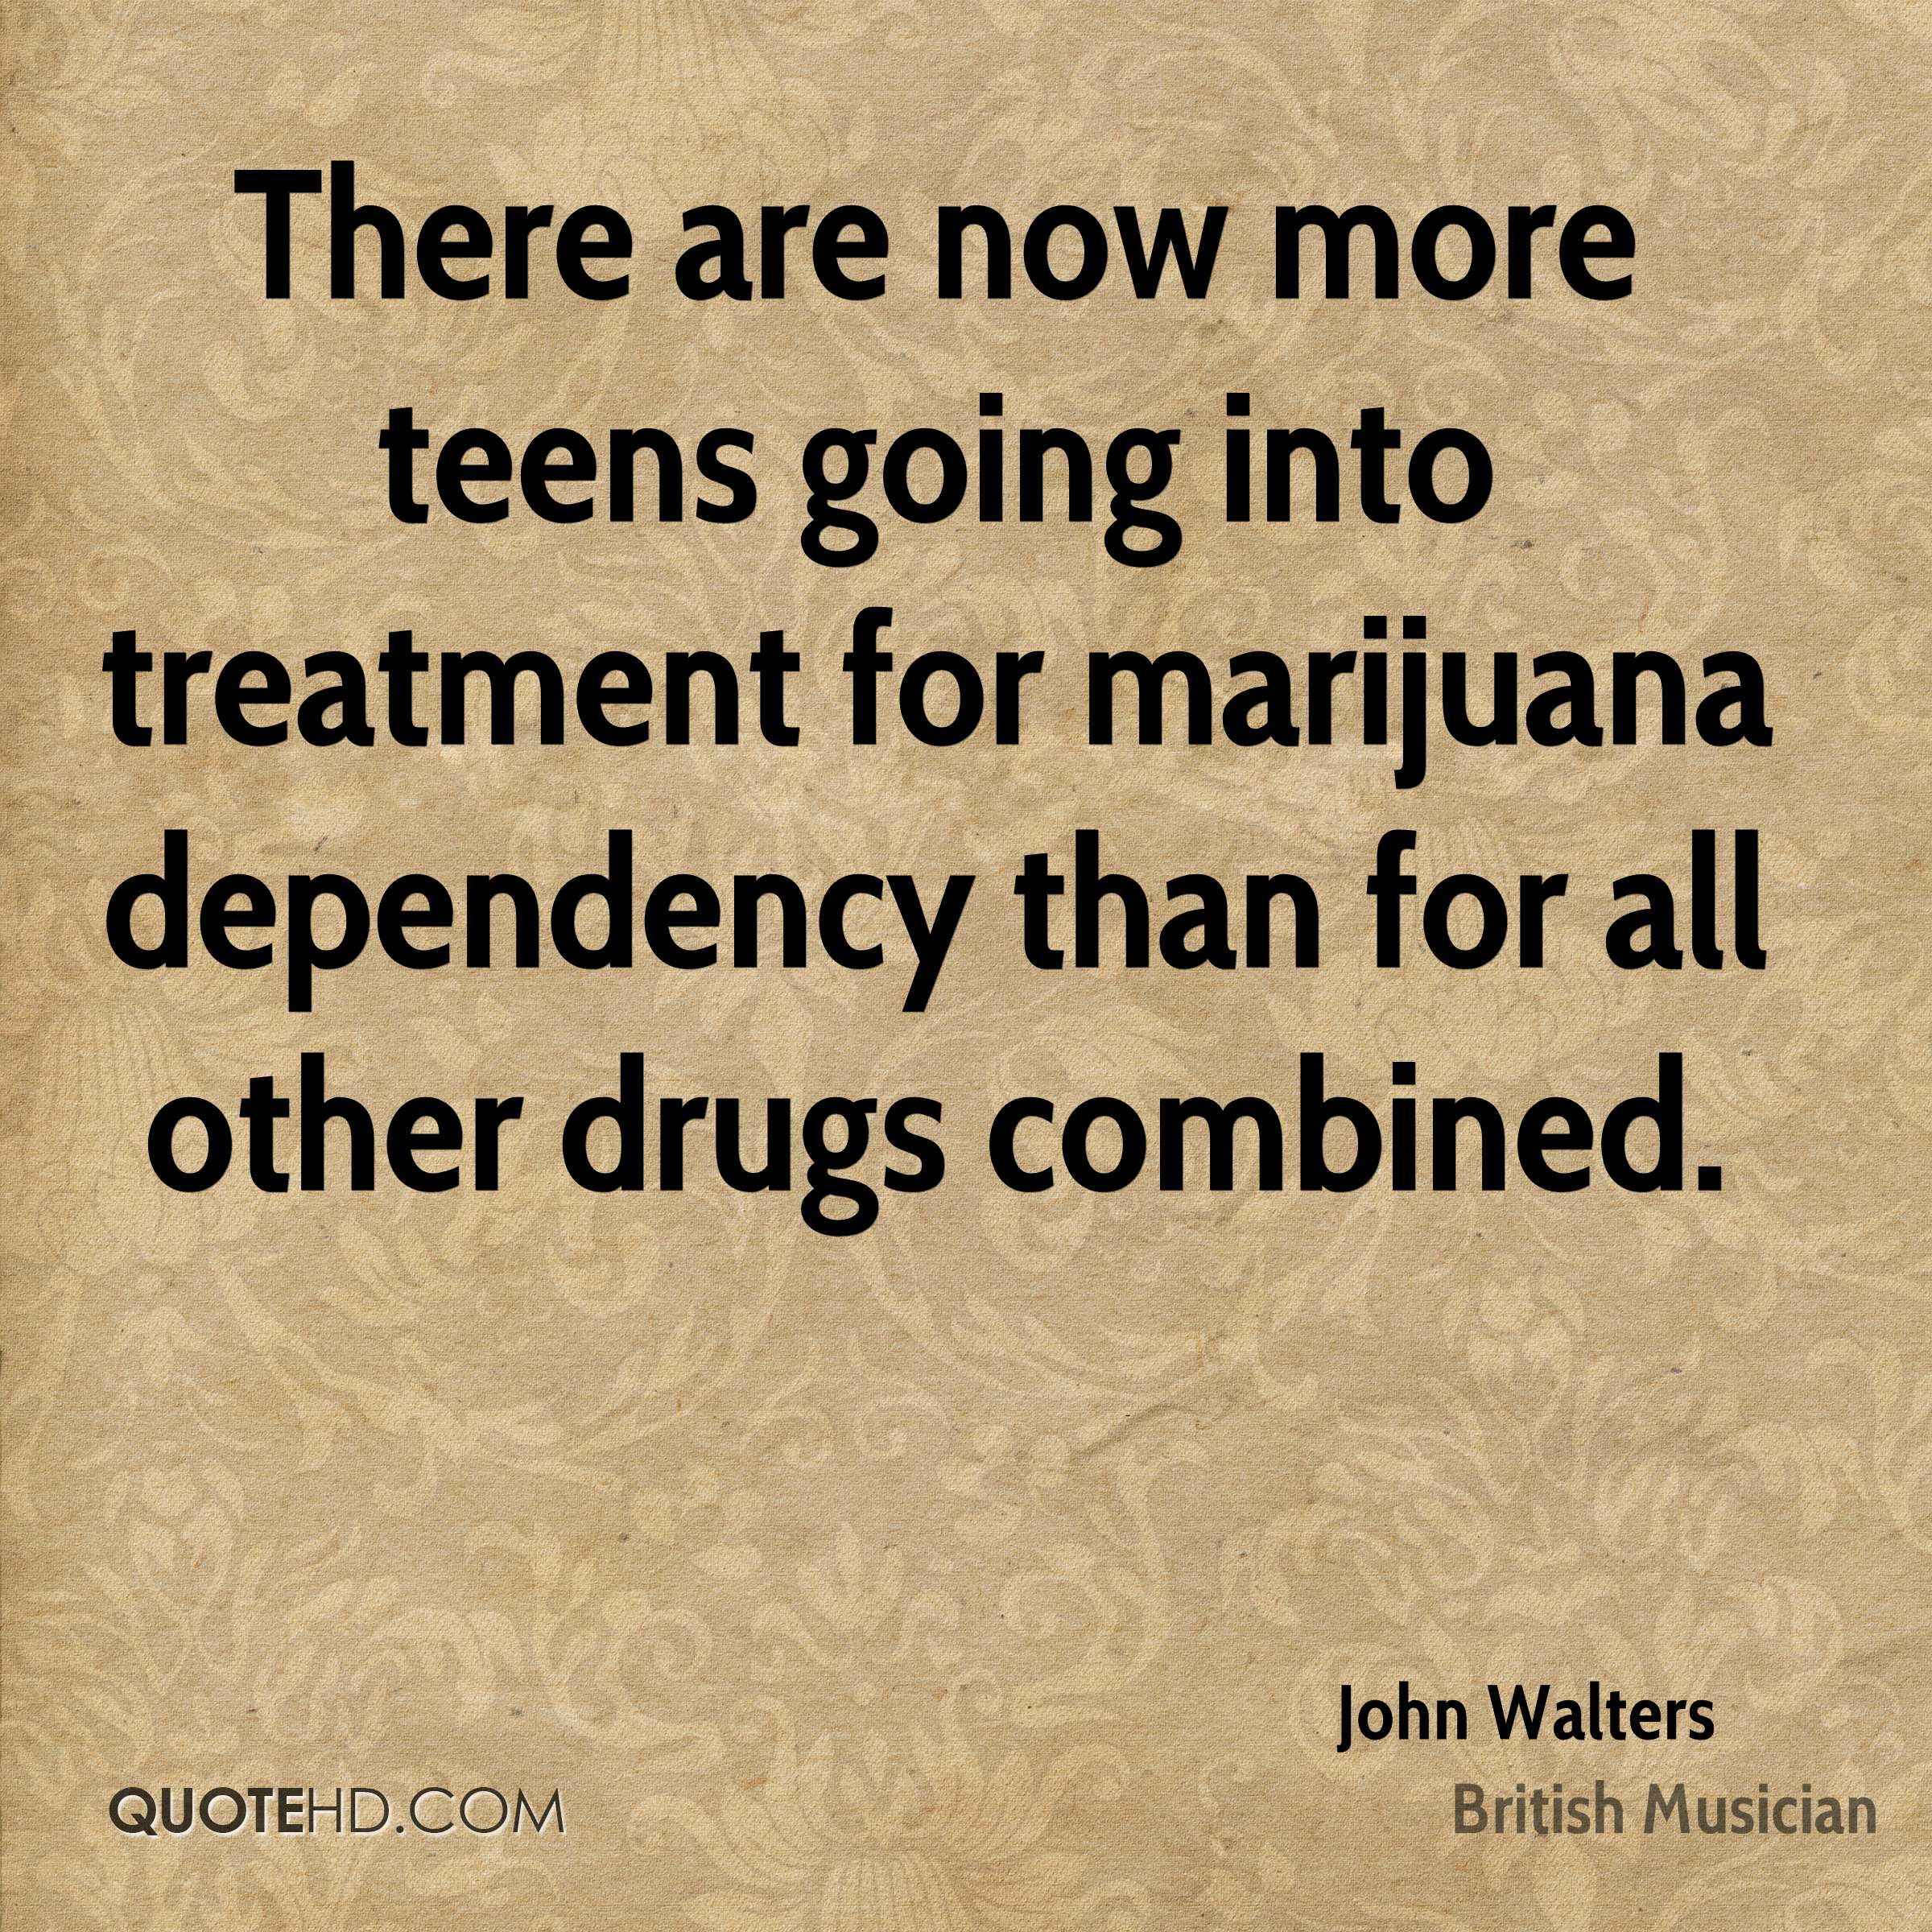 There are now more teens going into treatment for marijuana dependency than for all other drugs combined.